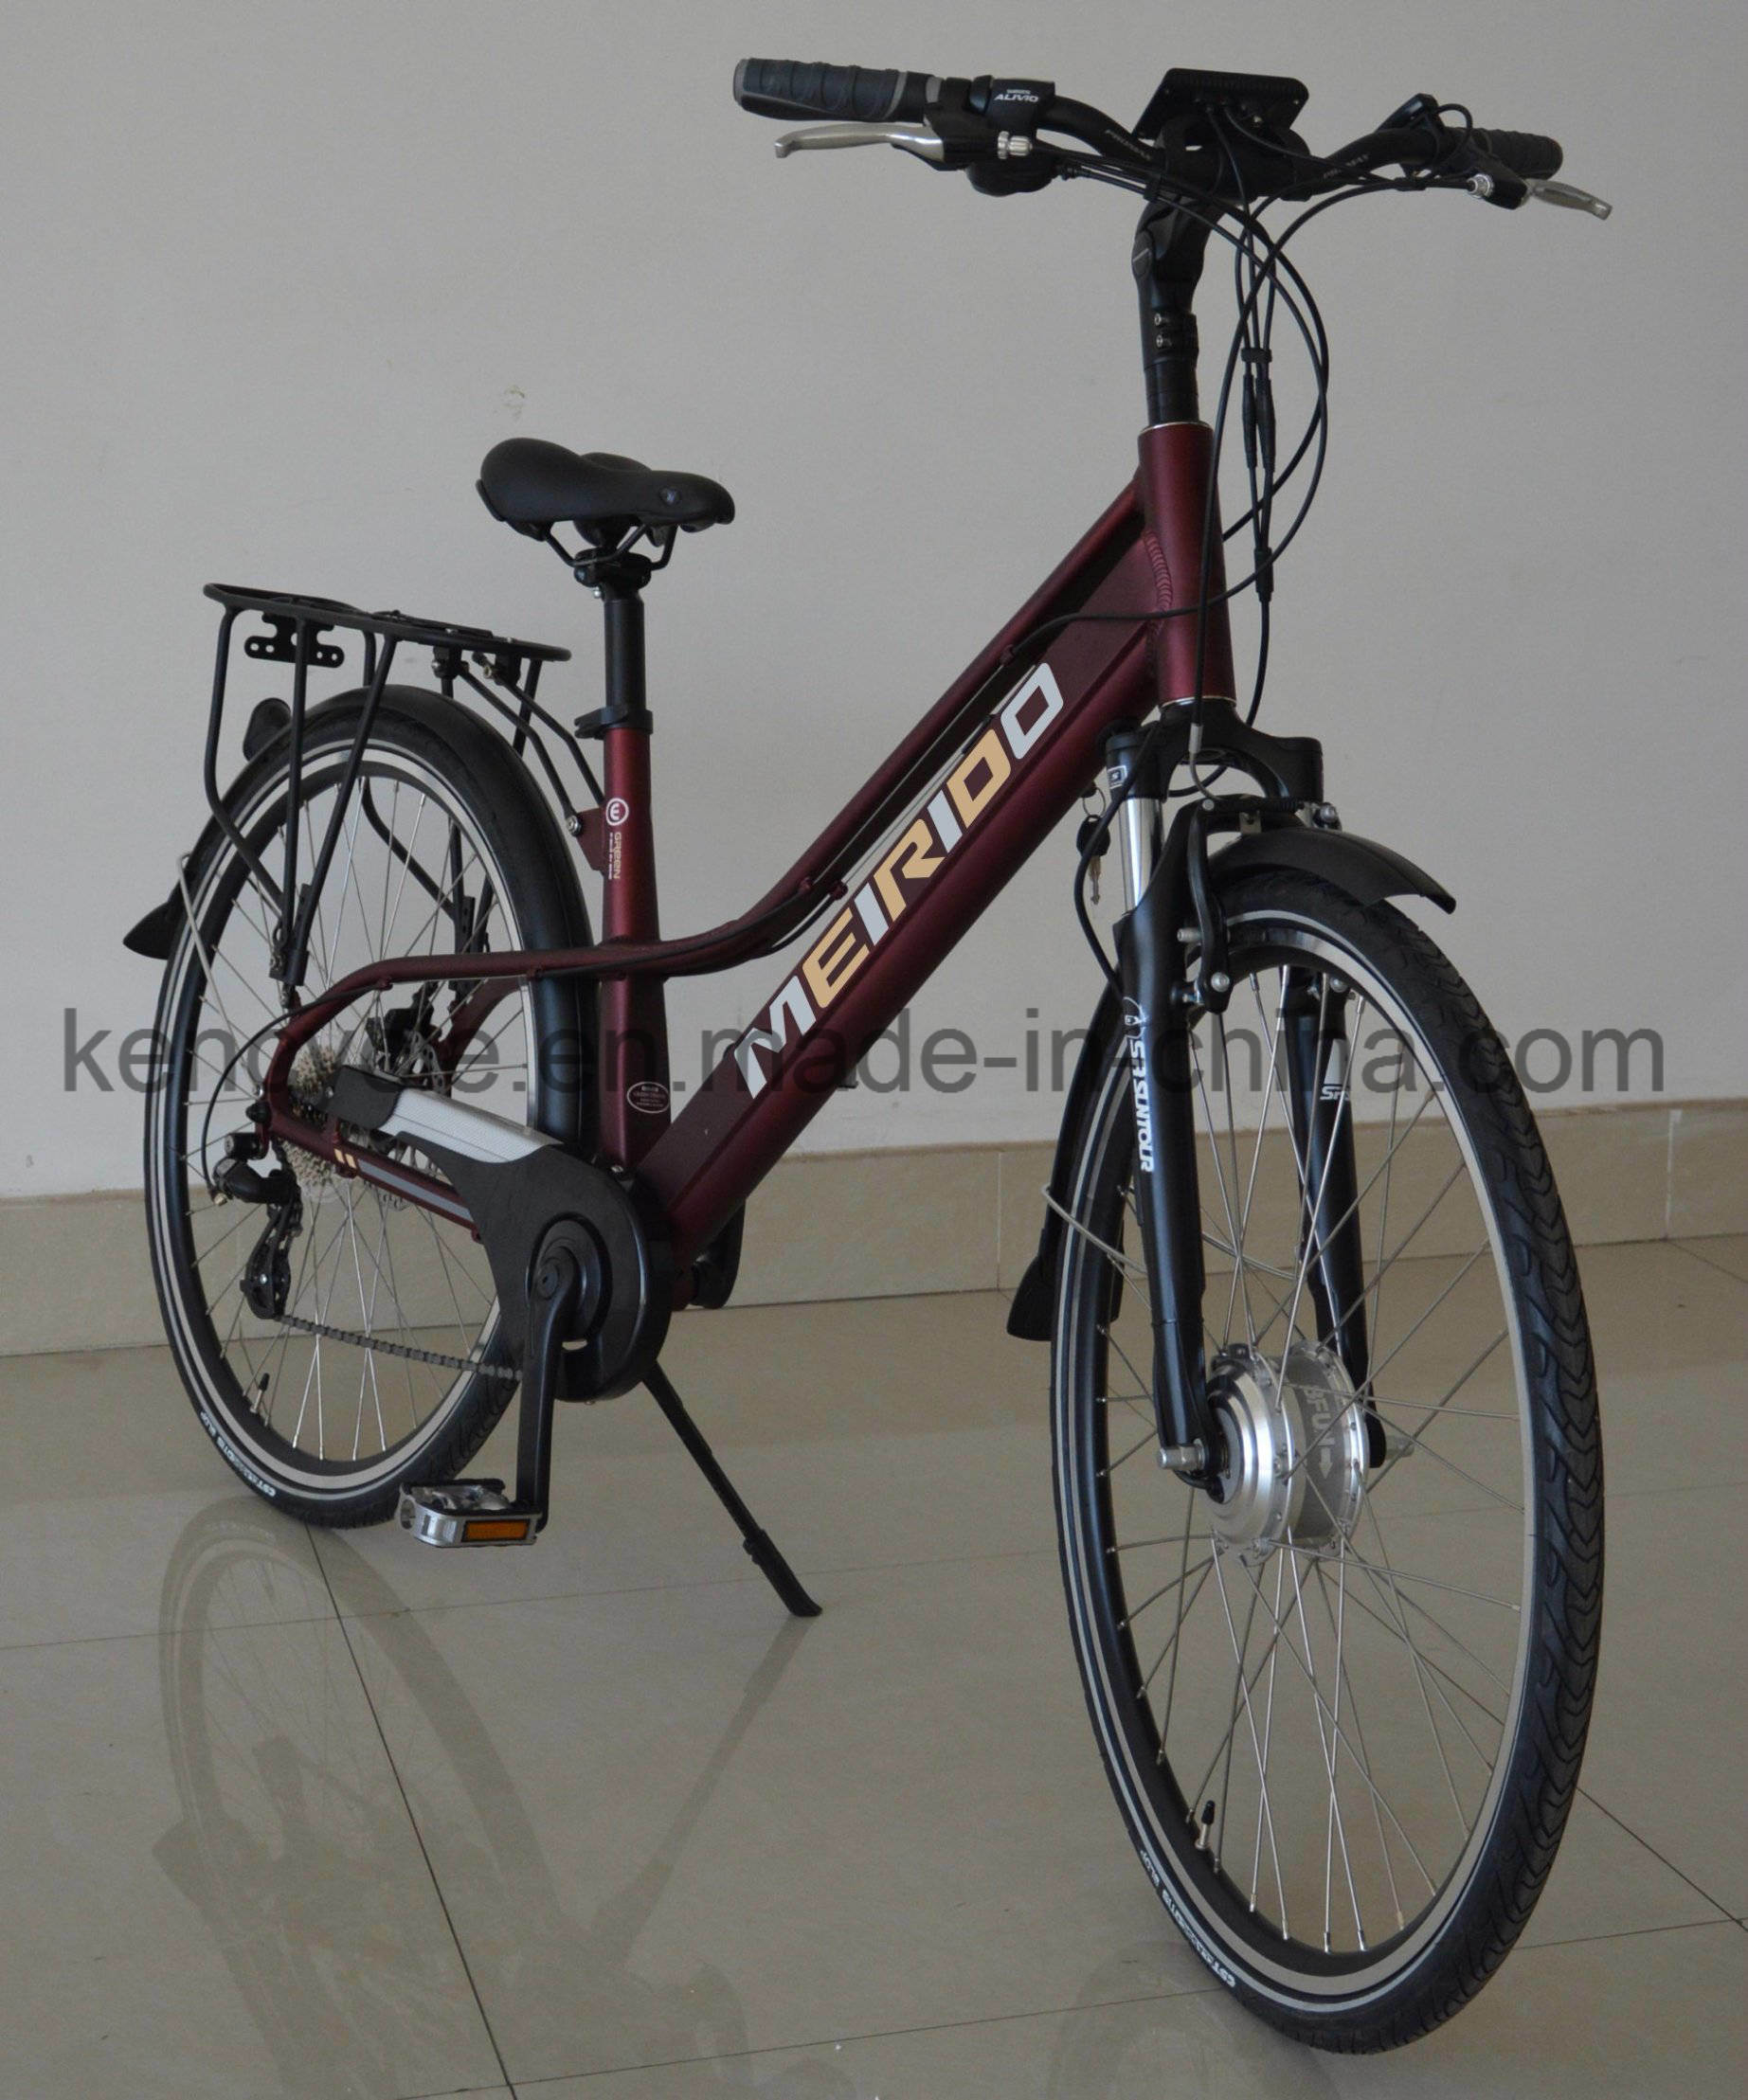 Holland 28 Inch City Electric Bike Oma Bicycle Popular Dutch Cycle China Supplier/E-Bike/Electric City Bike (SY-E2812)